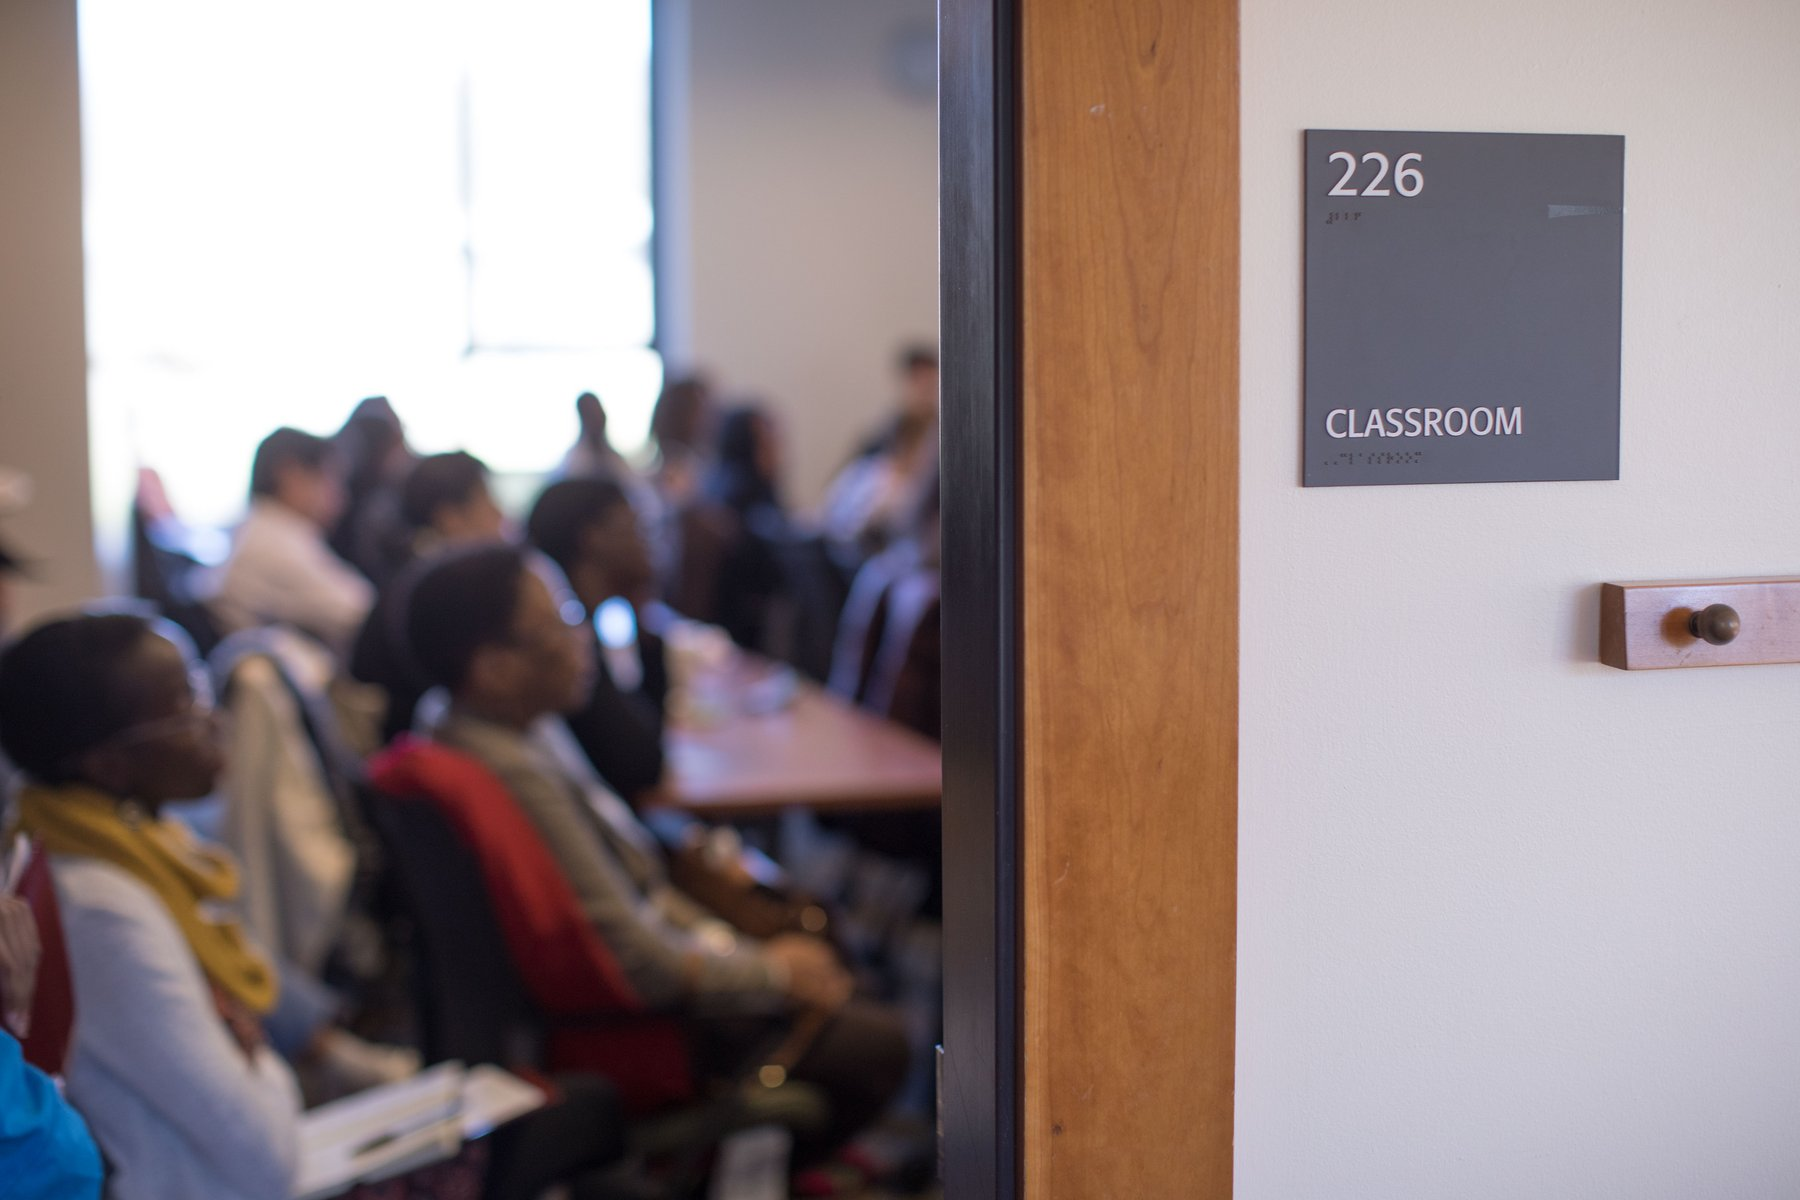 A classroom with attentive students in Kohlberg.